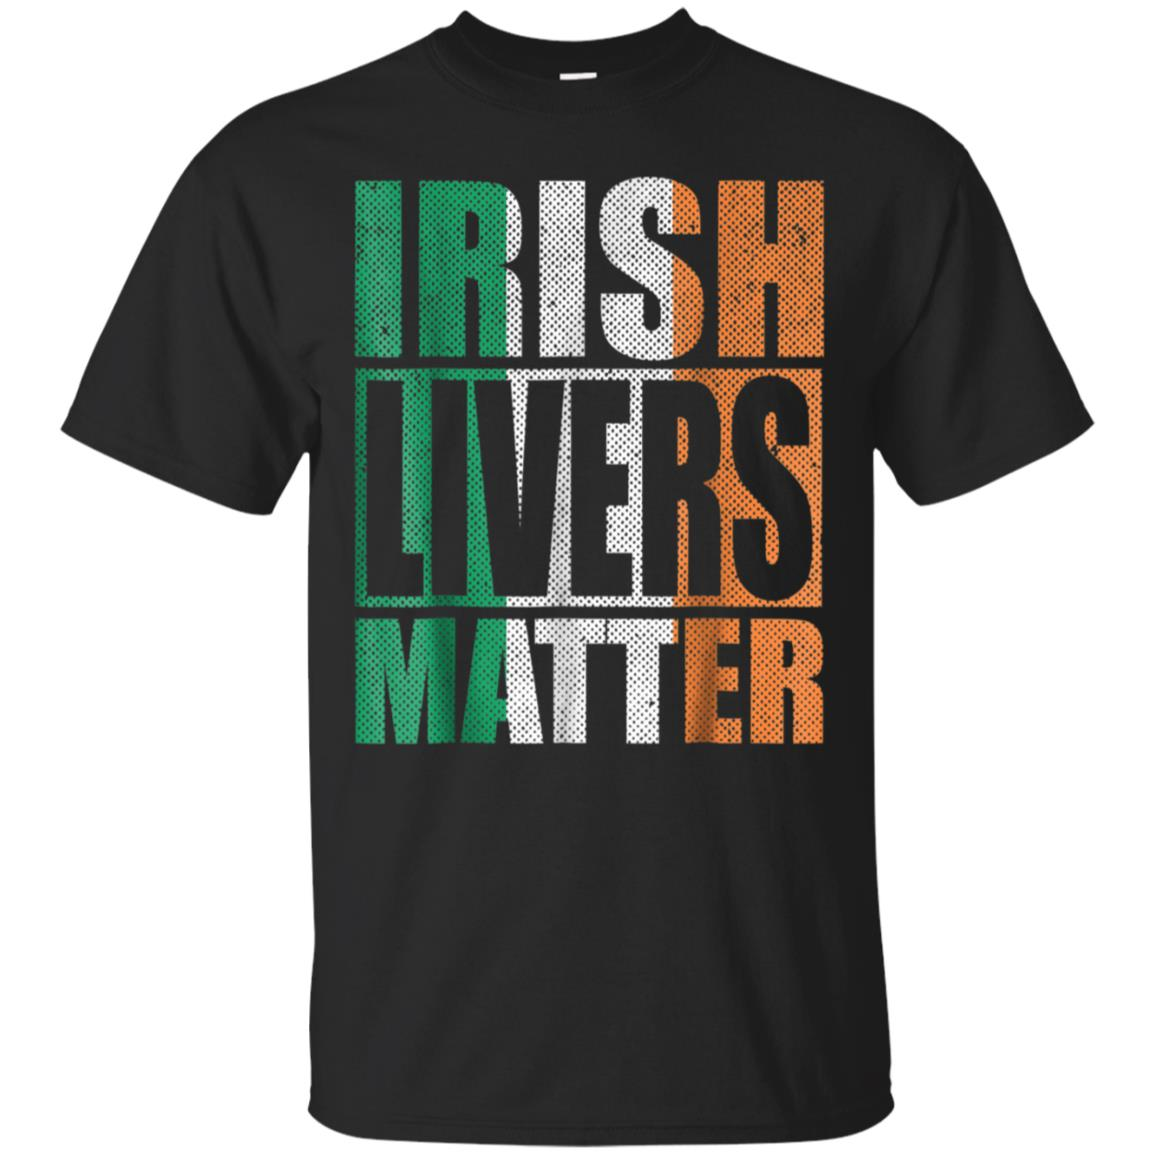 Funny Irish Livers Matter St. Patrick's Day Drinking T-Shirt 99promocode